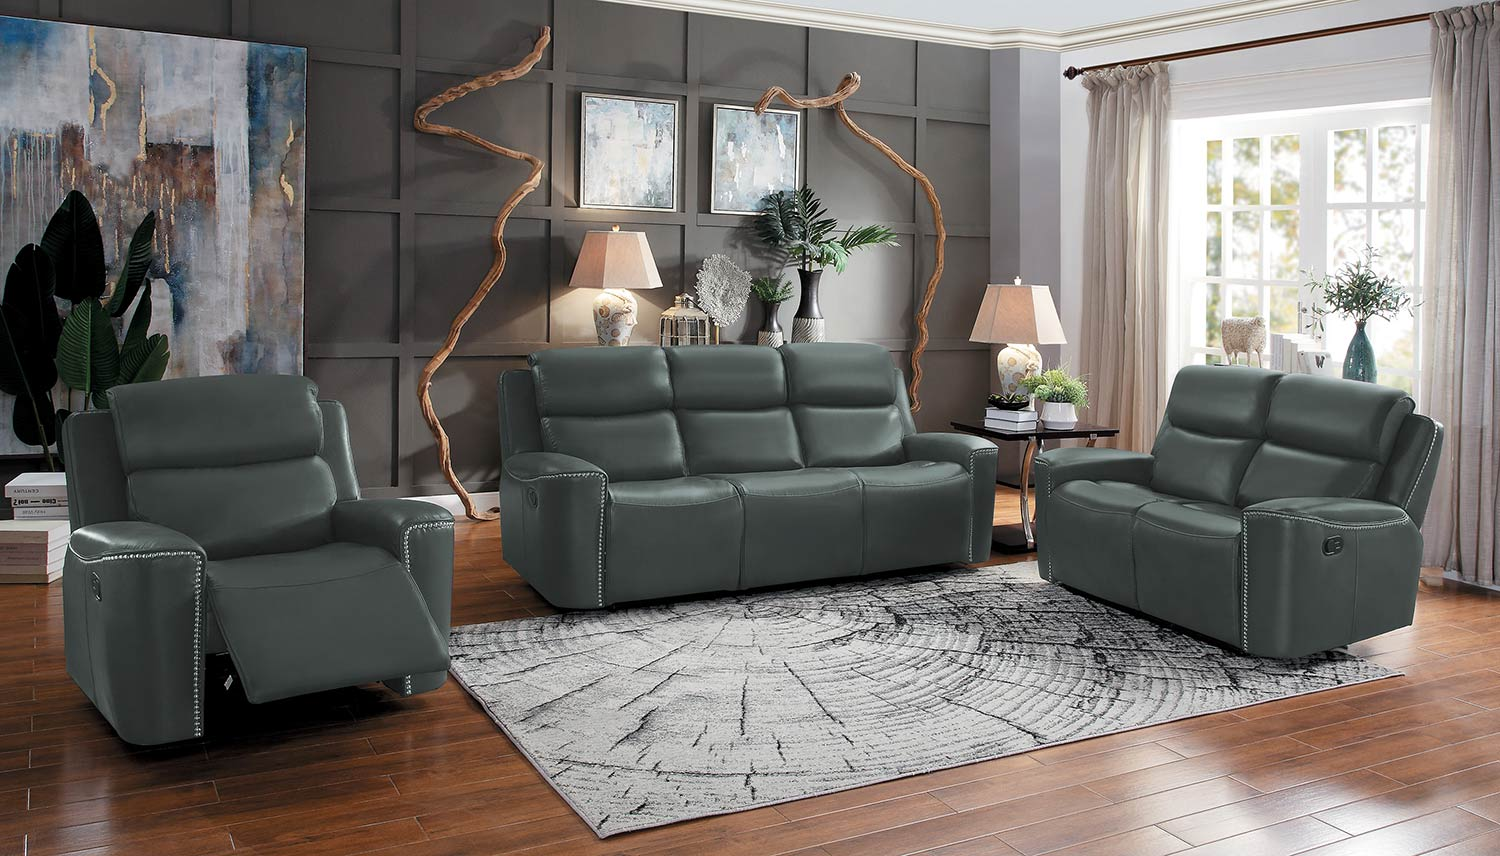 Homelegance Altair Reclining Sofa Set - Gray